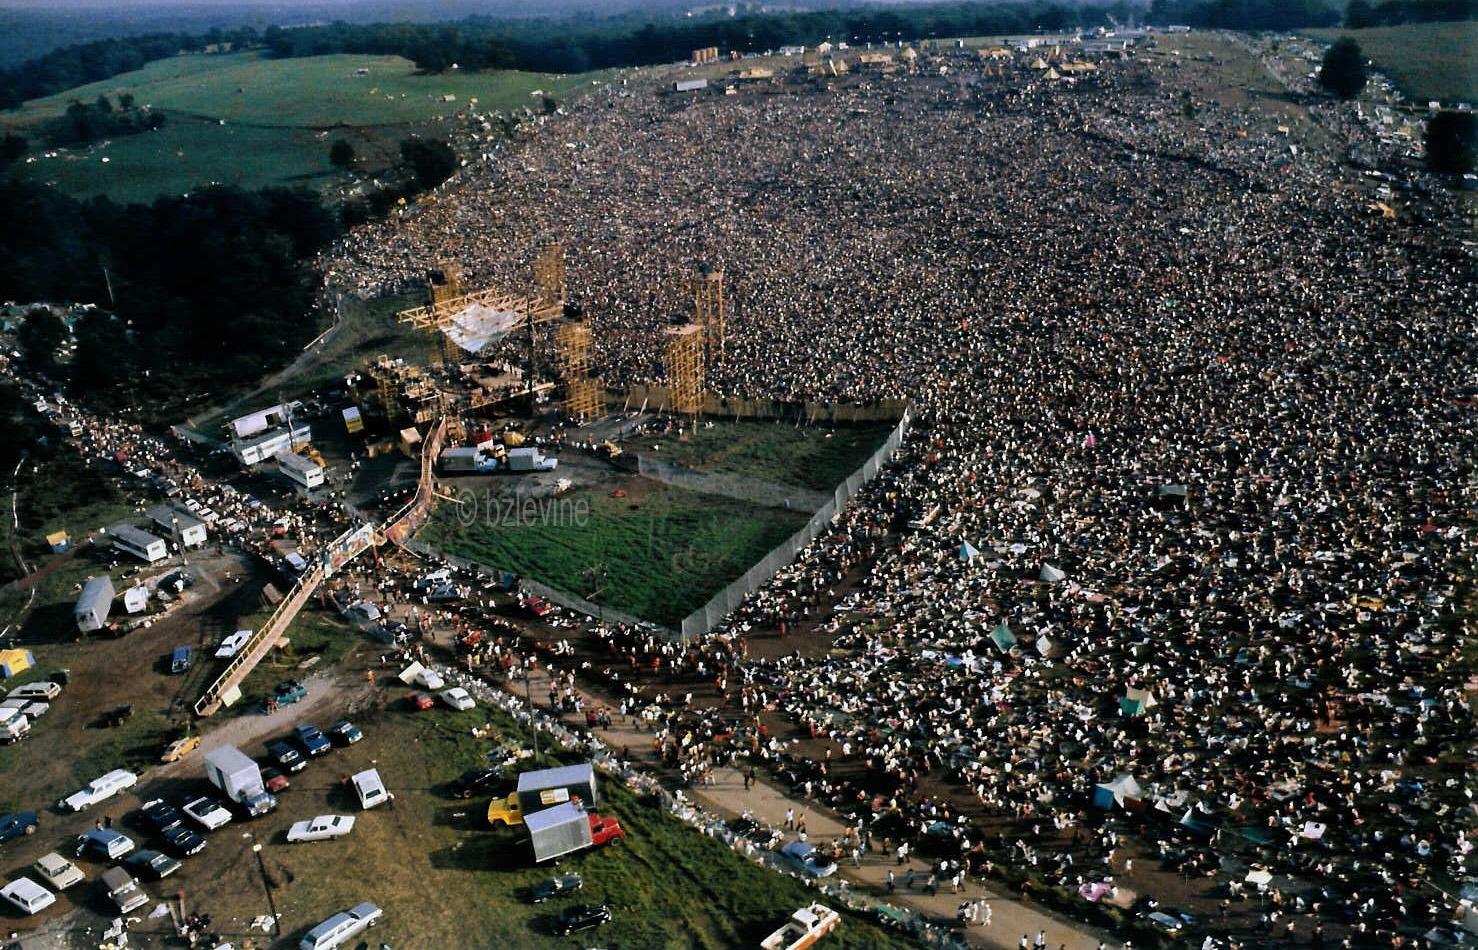 Woodstock Photo of 1969 Festival, View from the helicopter by Woodstock Photographer Barry Z Levine, copyright Barry Z Levine, all rights reserved